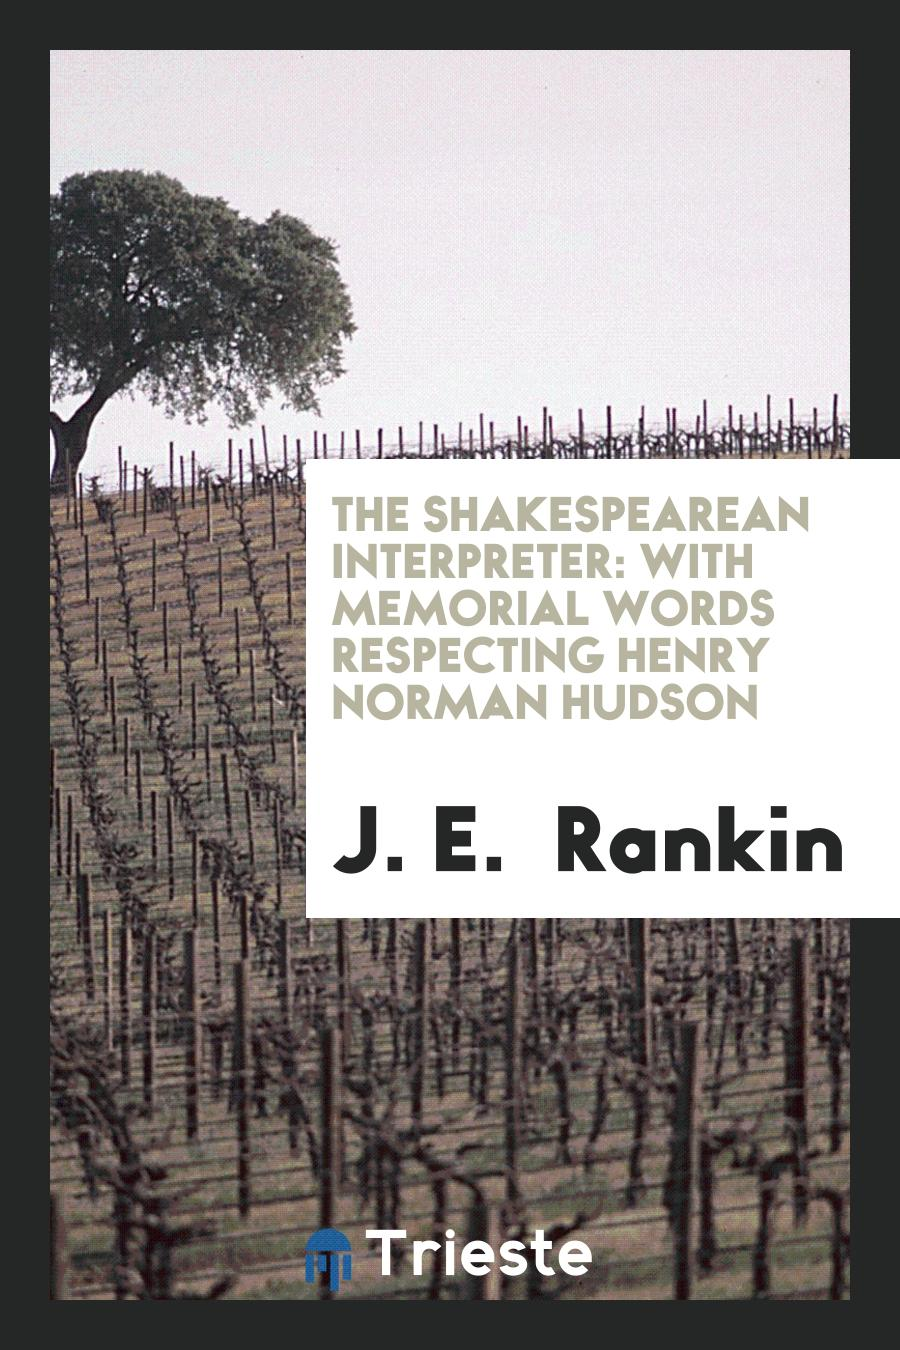 The Shakespearean Interpreter: With Memorial Words Respecting Henry Norman Hudson